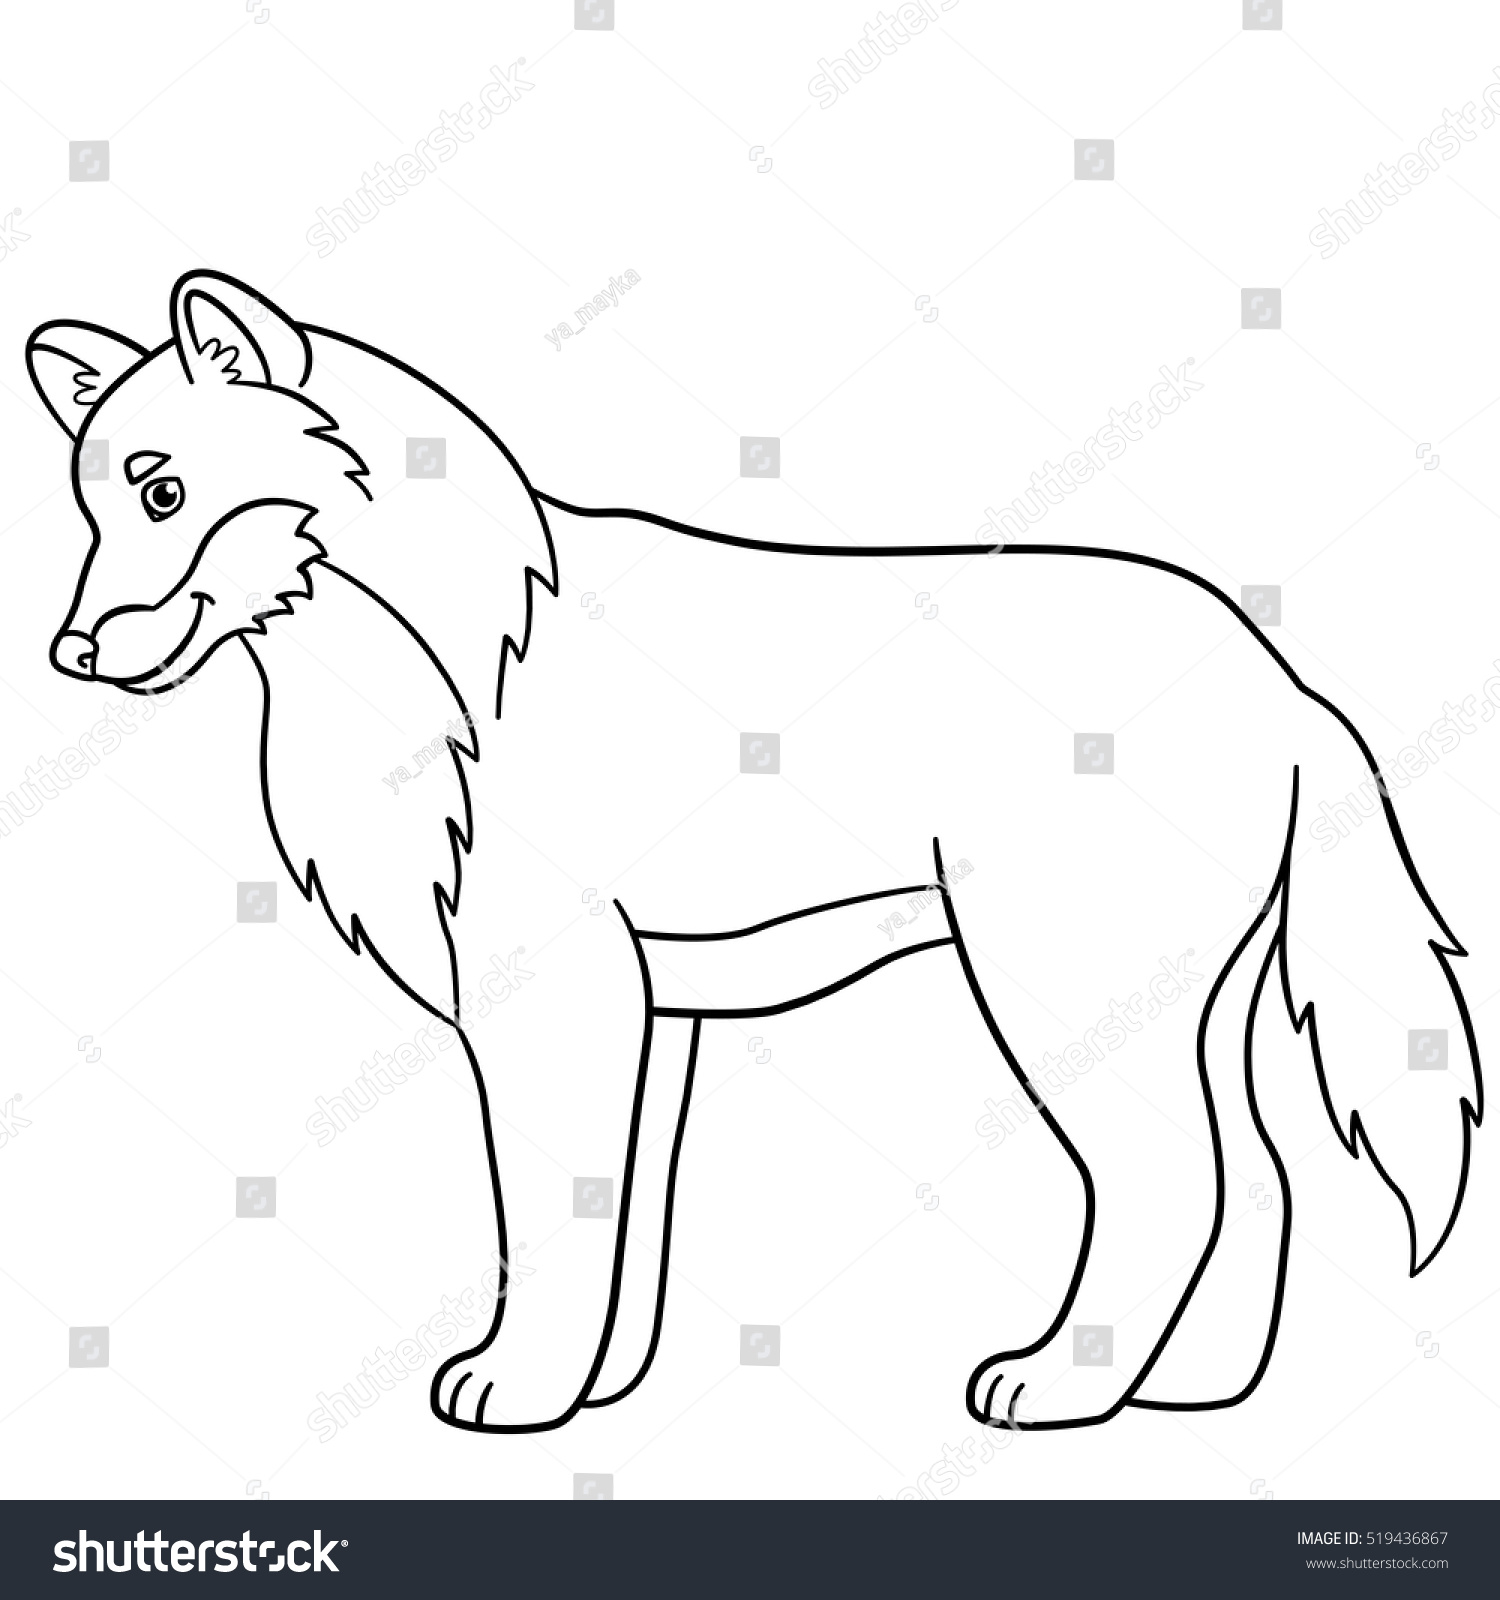 Coloring pages. Cute beautiful wolf stands and smiles. | EZ Canvas